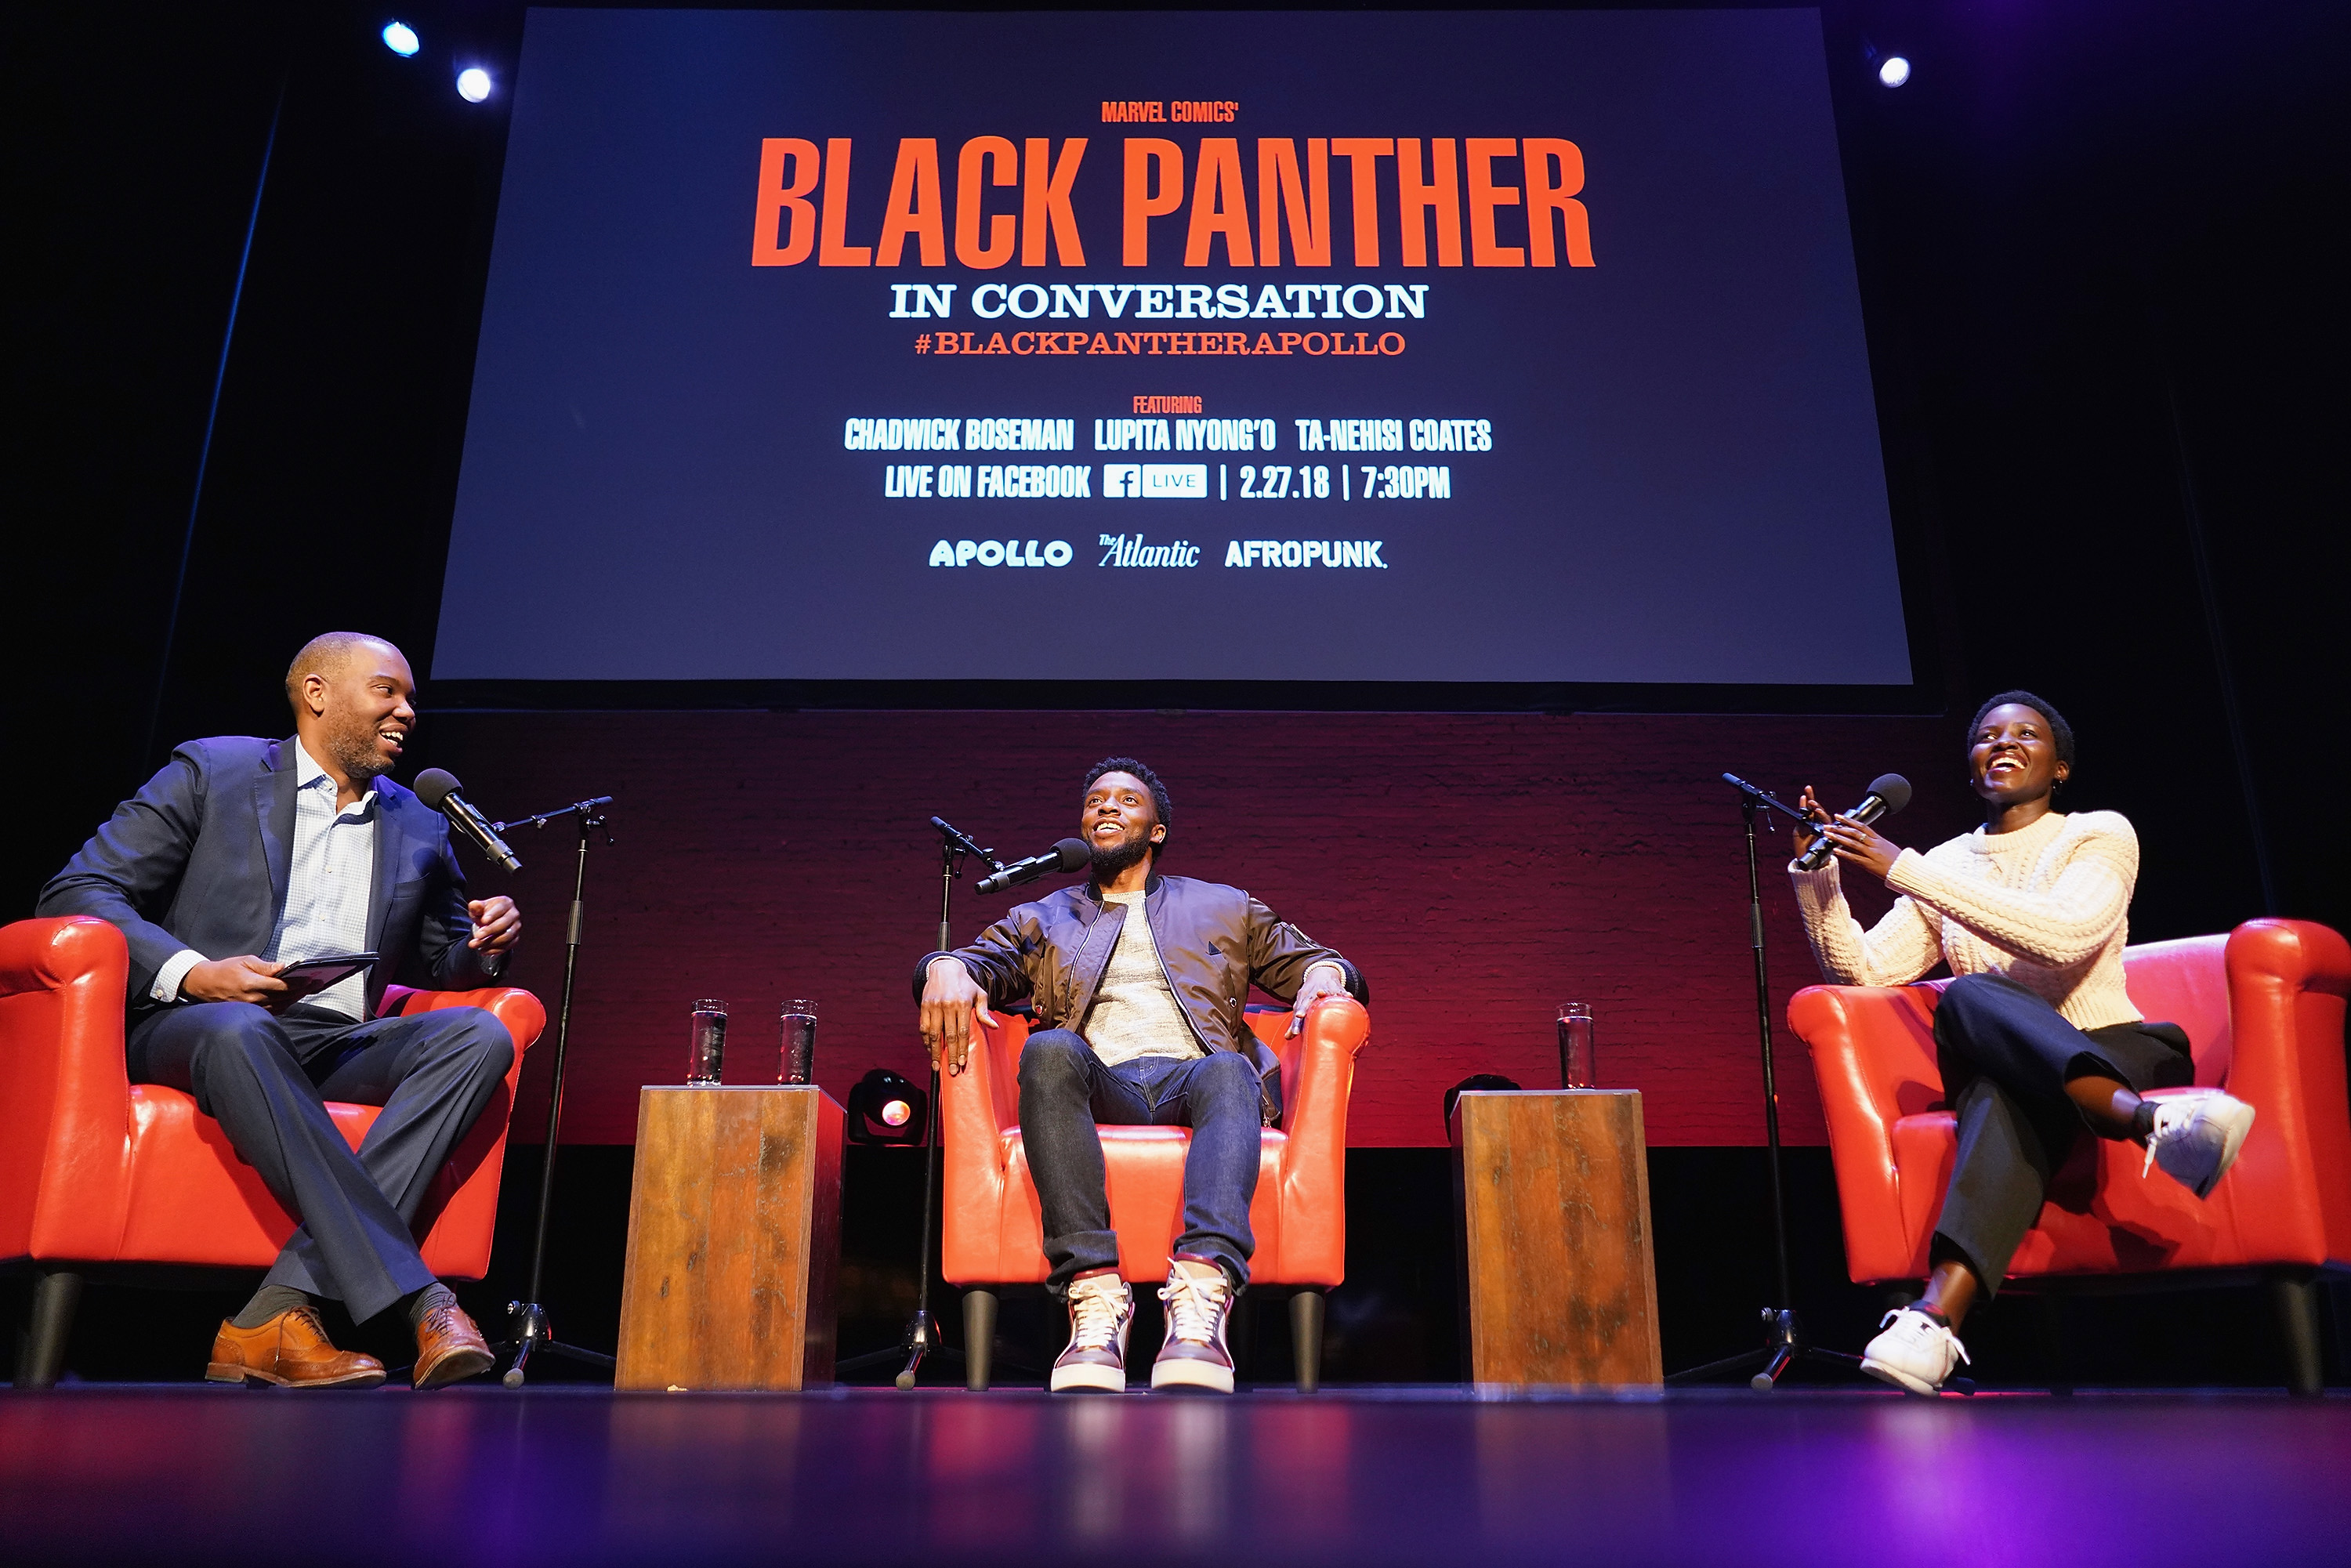 Black Panther in Conversation